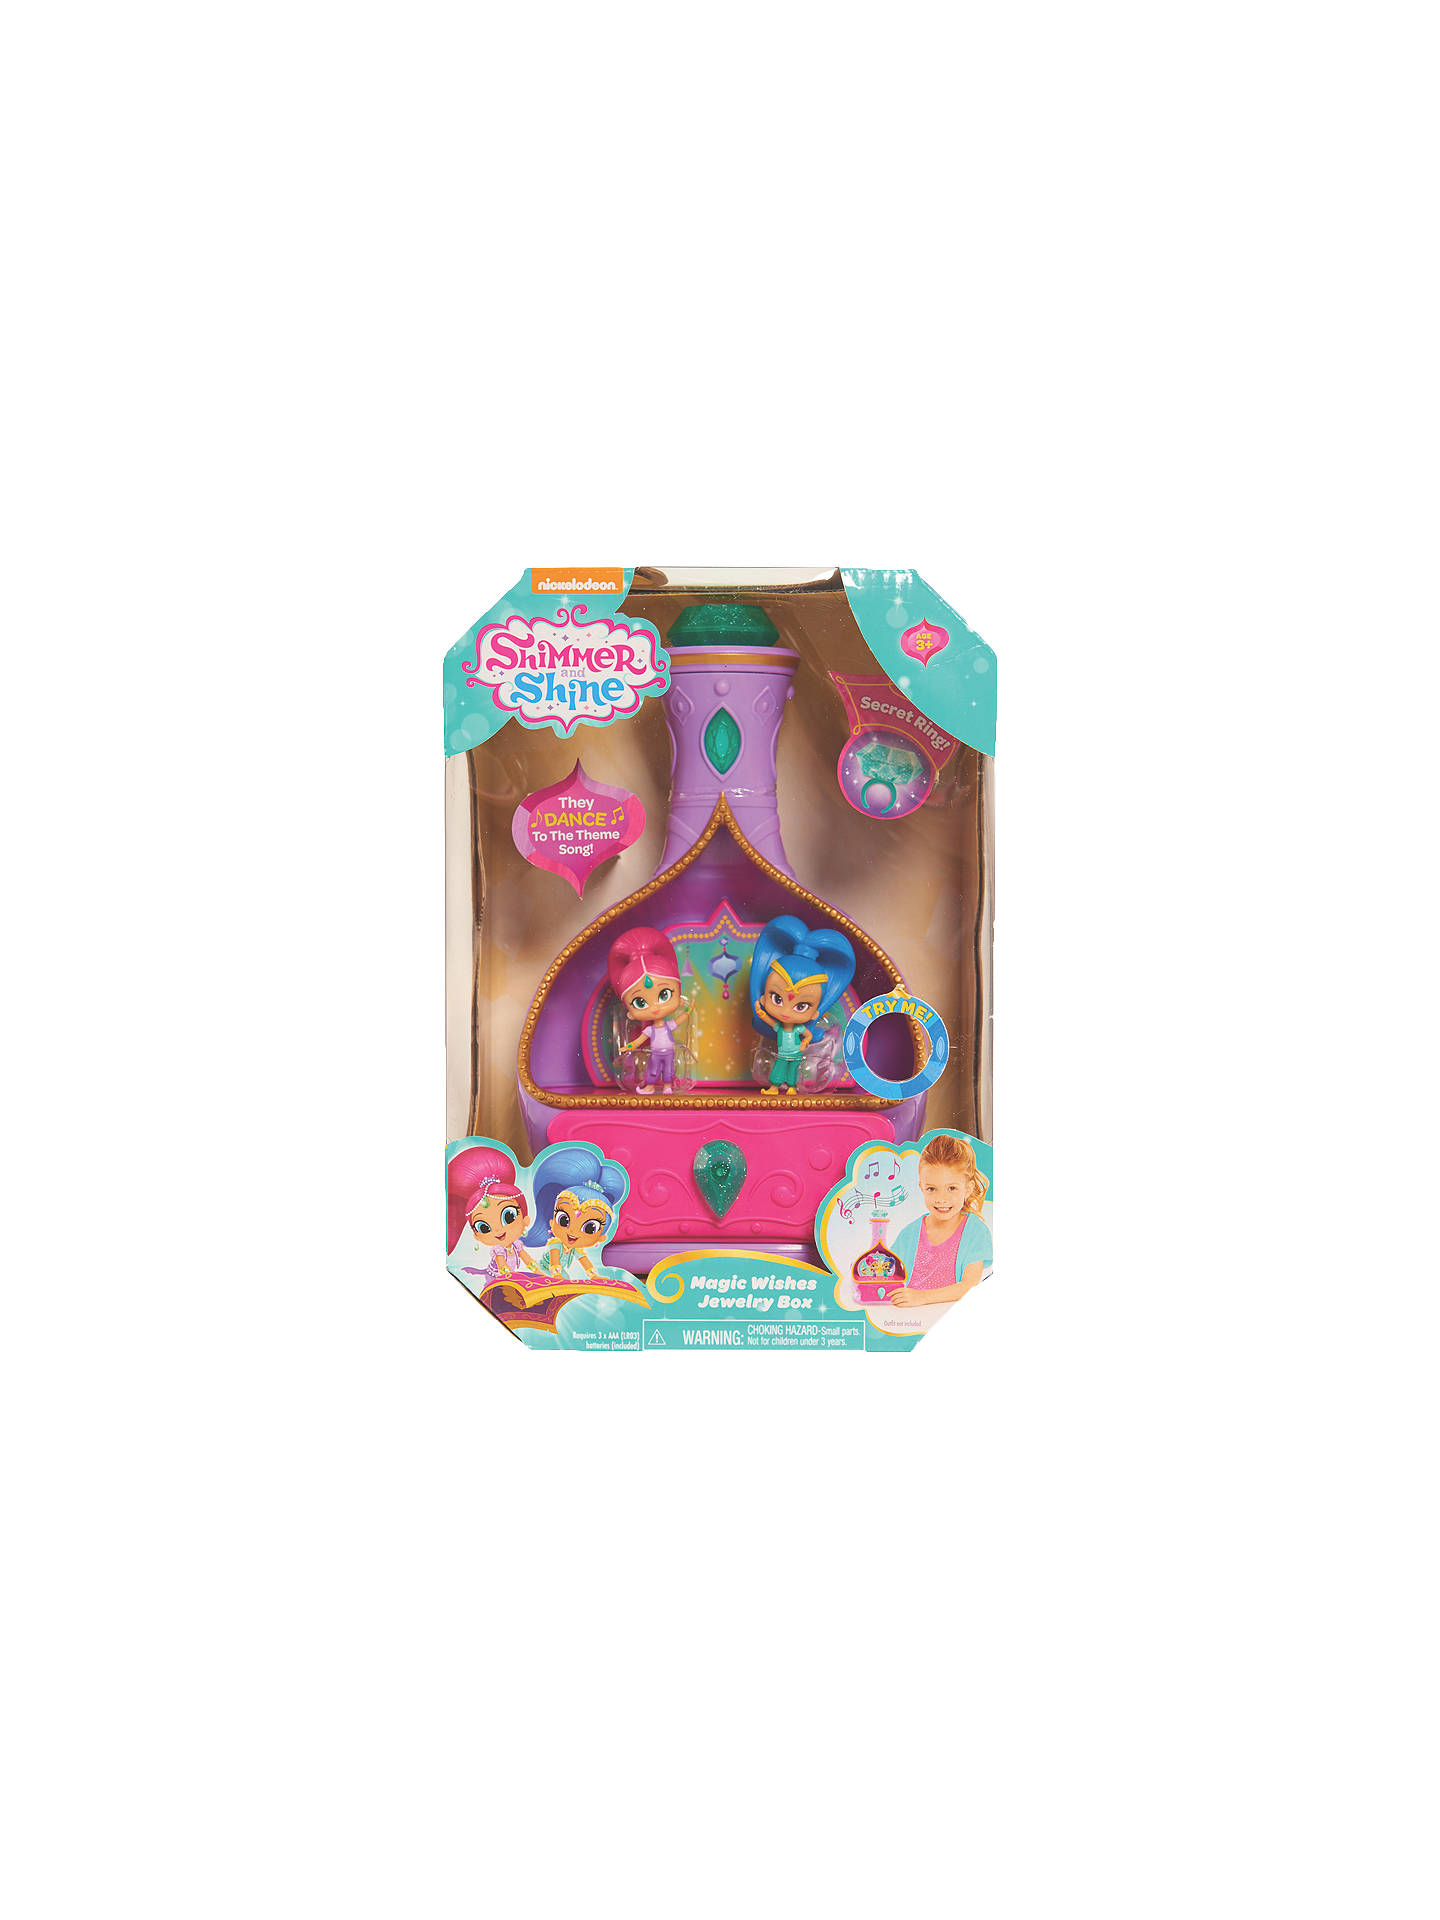 Shimmer and Shine Magic Wishes Jewellery Box at John Lewis & Partners